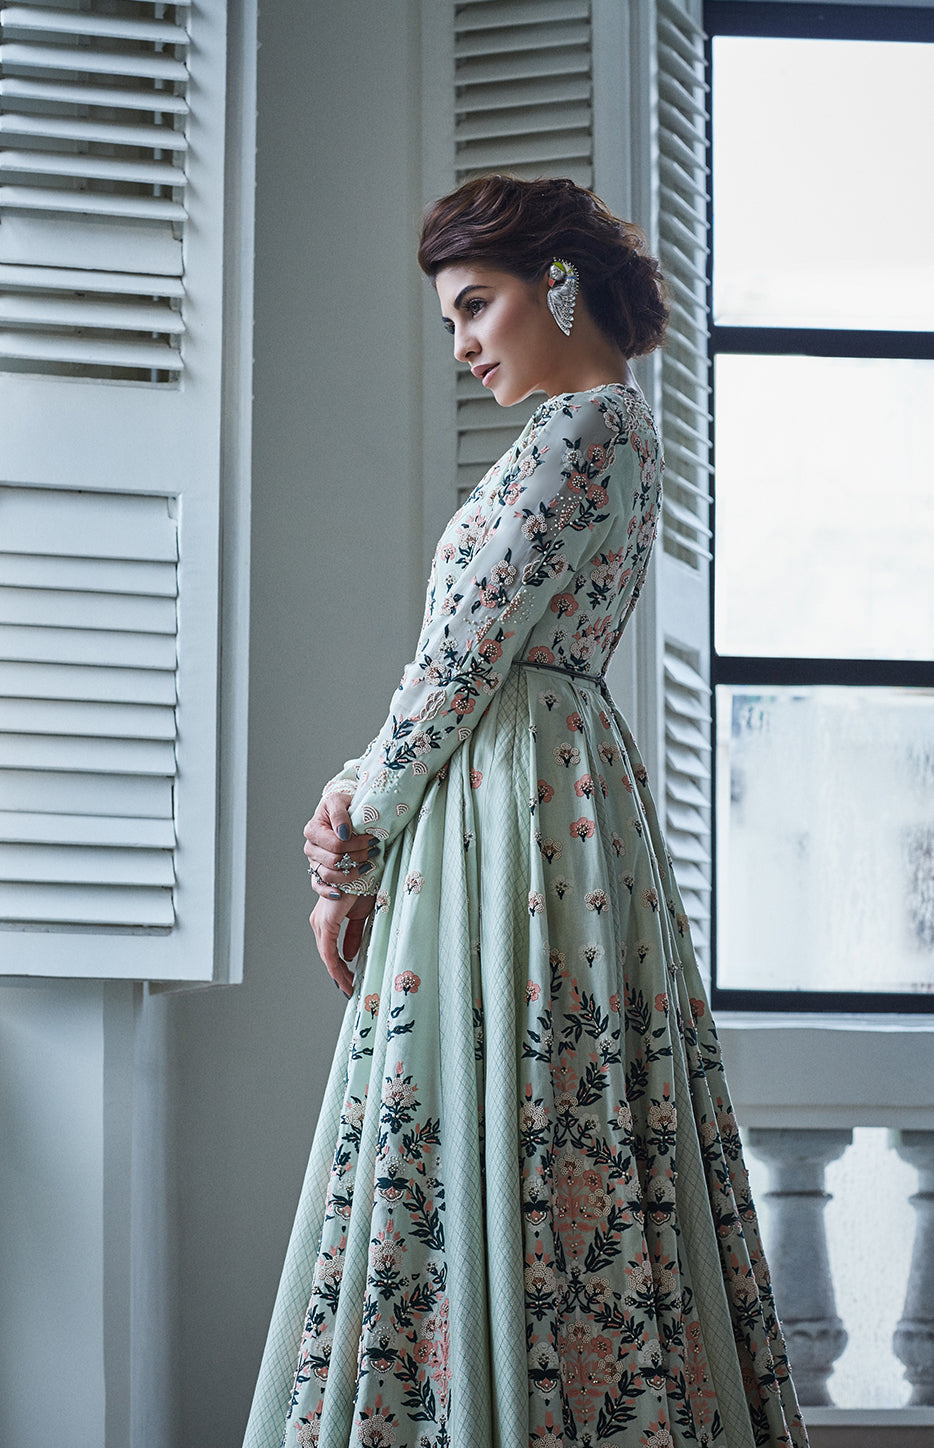 Jacqueline Fernandez Wearing a Mint Green Pleated Anarkali